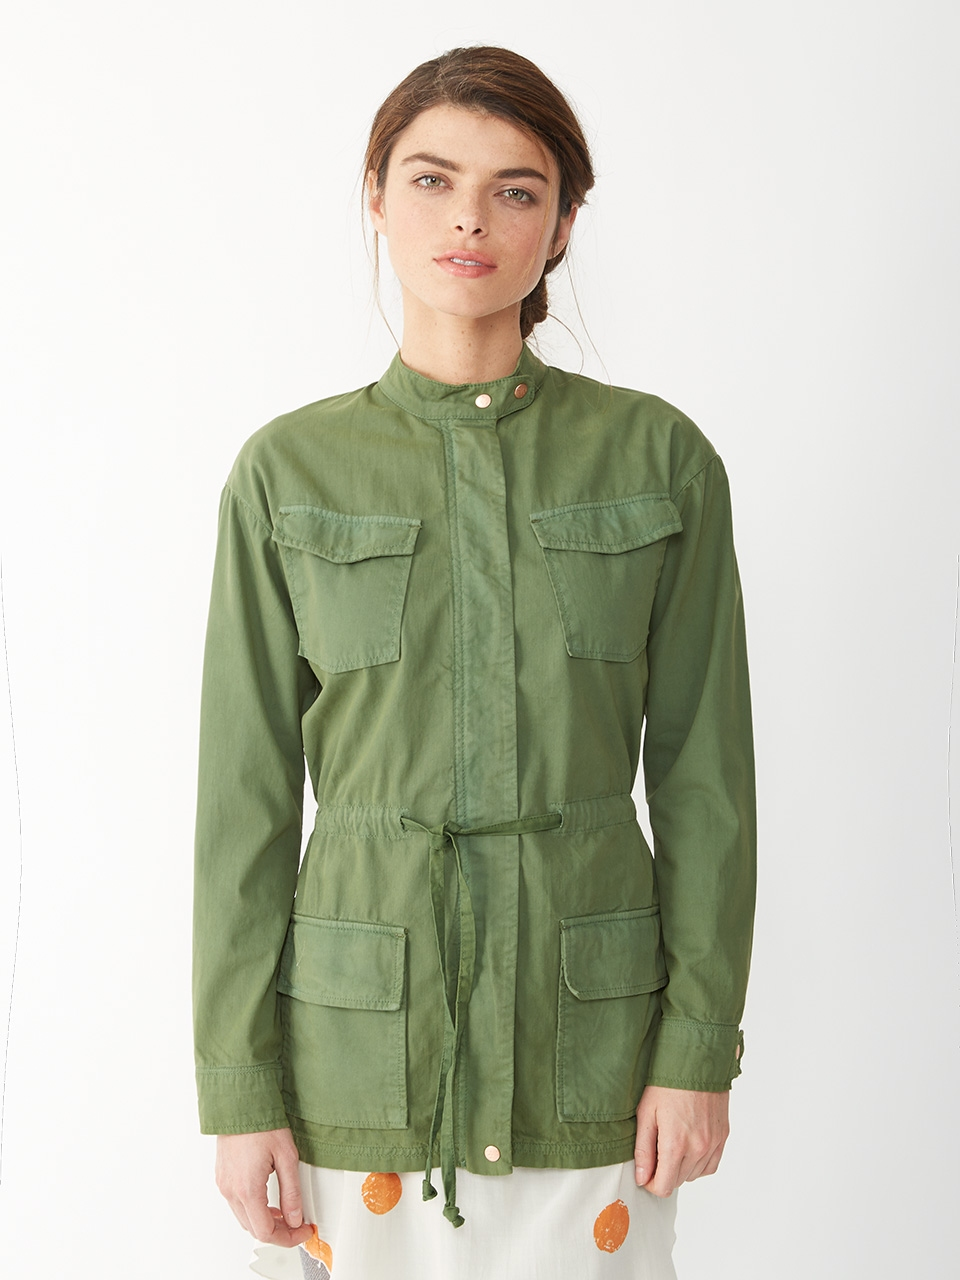 Herringbone military jacket